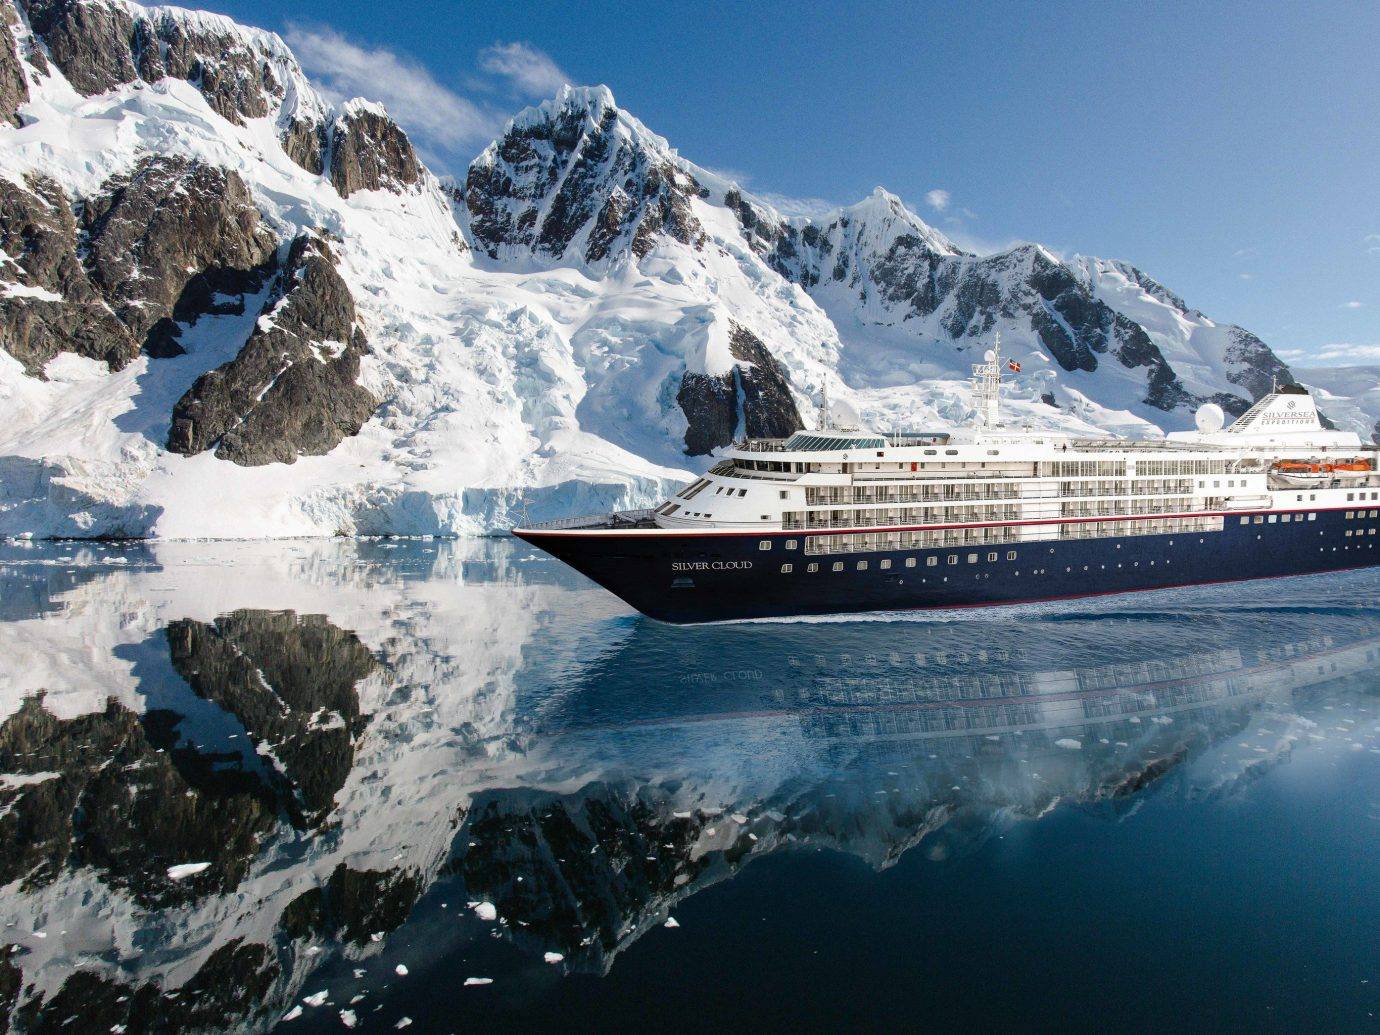 Cruise Travel Luxury Travel Trip Ideas outdoor sky cruise ship snow passenger ship mountain water transportation ship watercraft ocean liner glacial landform motor ship water mountain range Nature yacht naval architecture glacier fjord ice